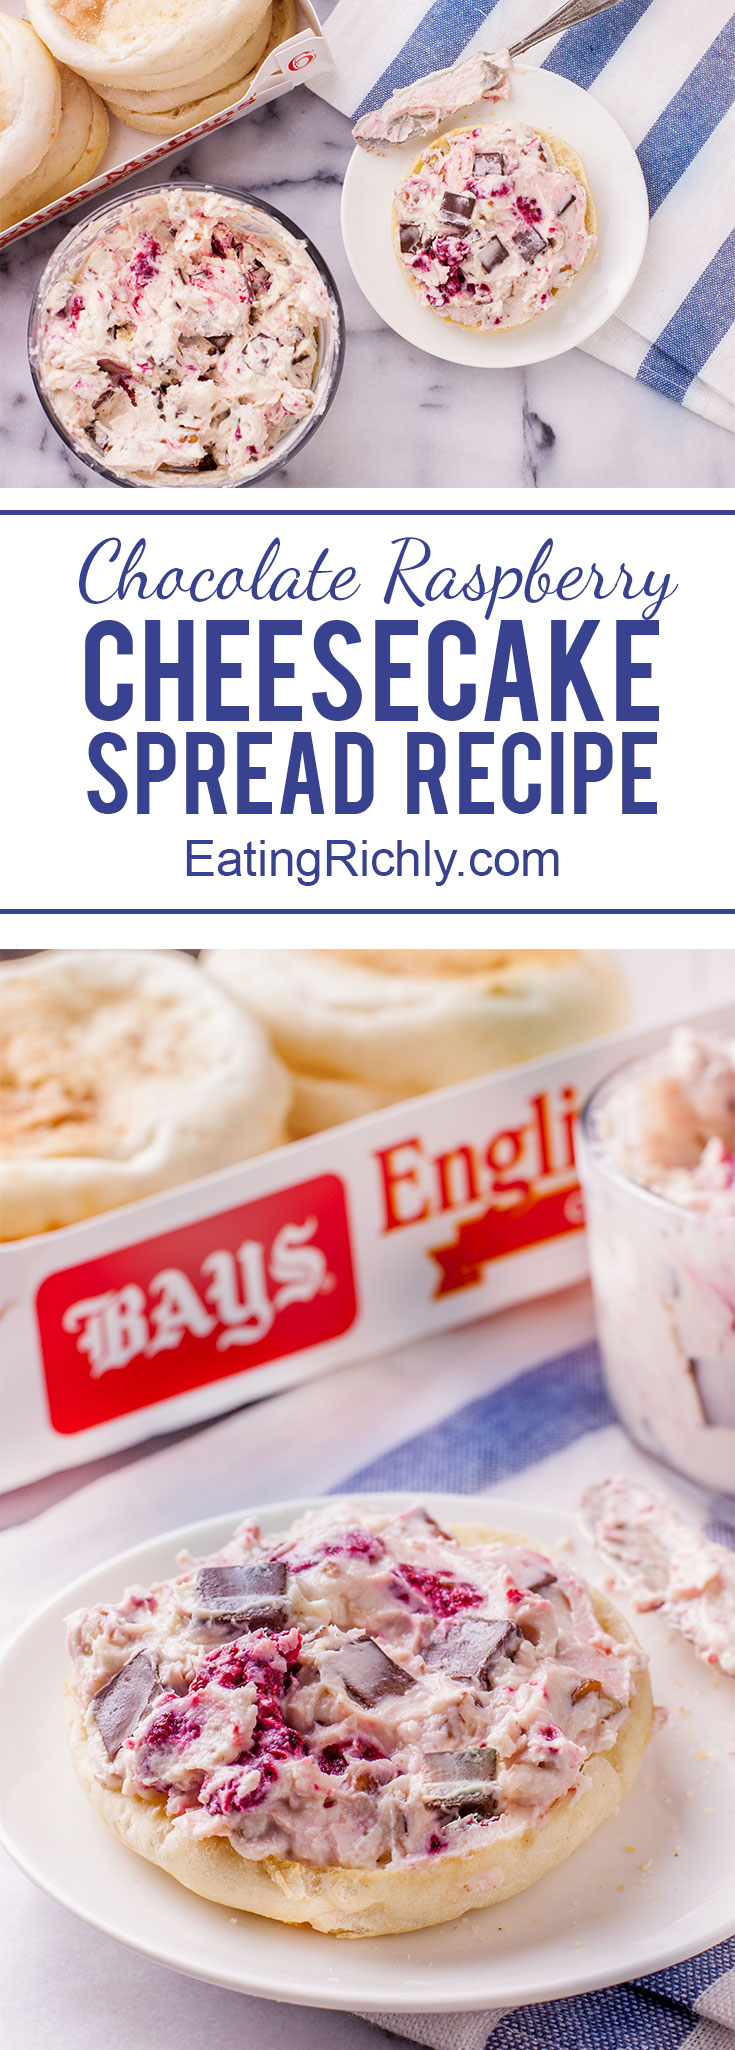 This chocolate raspberry cheesecake spread is an easy sweet snack; perfect on English muffins with some hot cocoa to finish off an afternoon of snow play. From EatingRichly.com